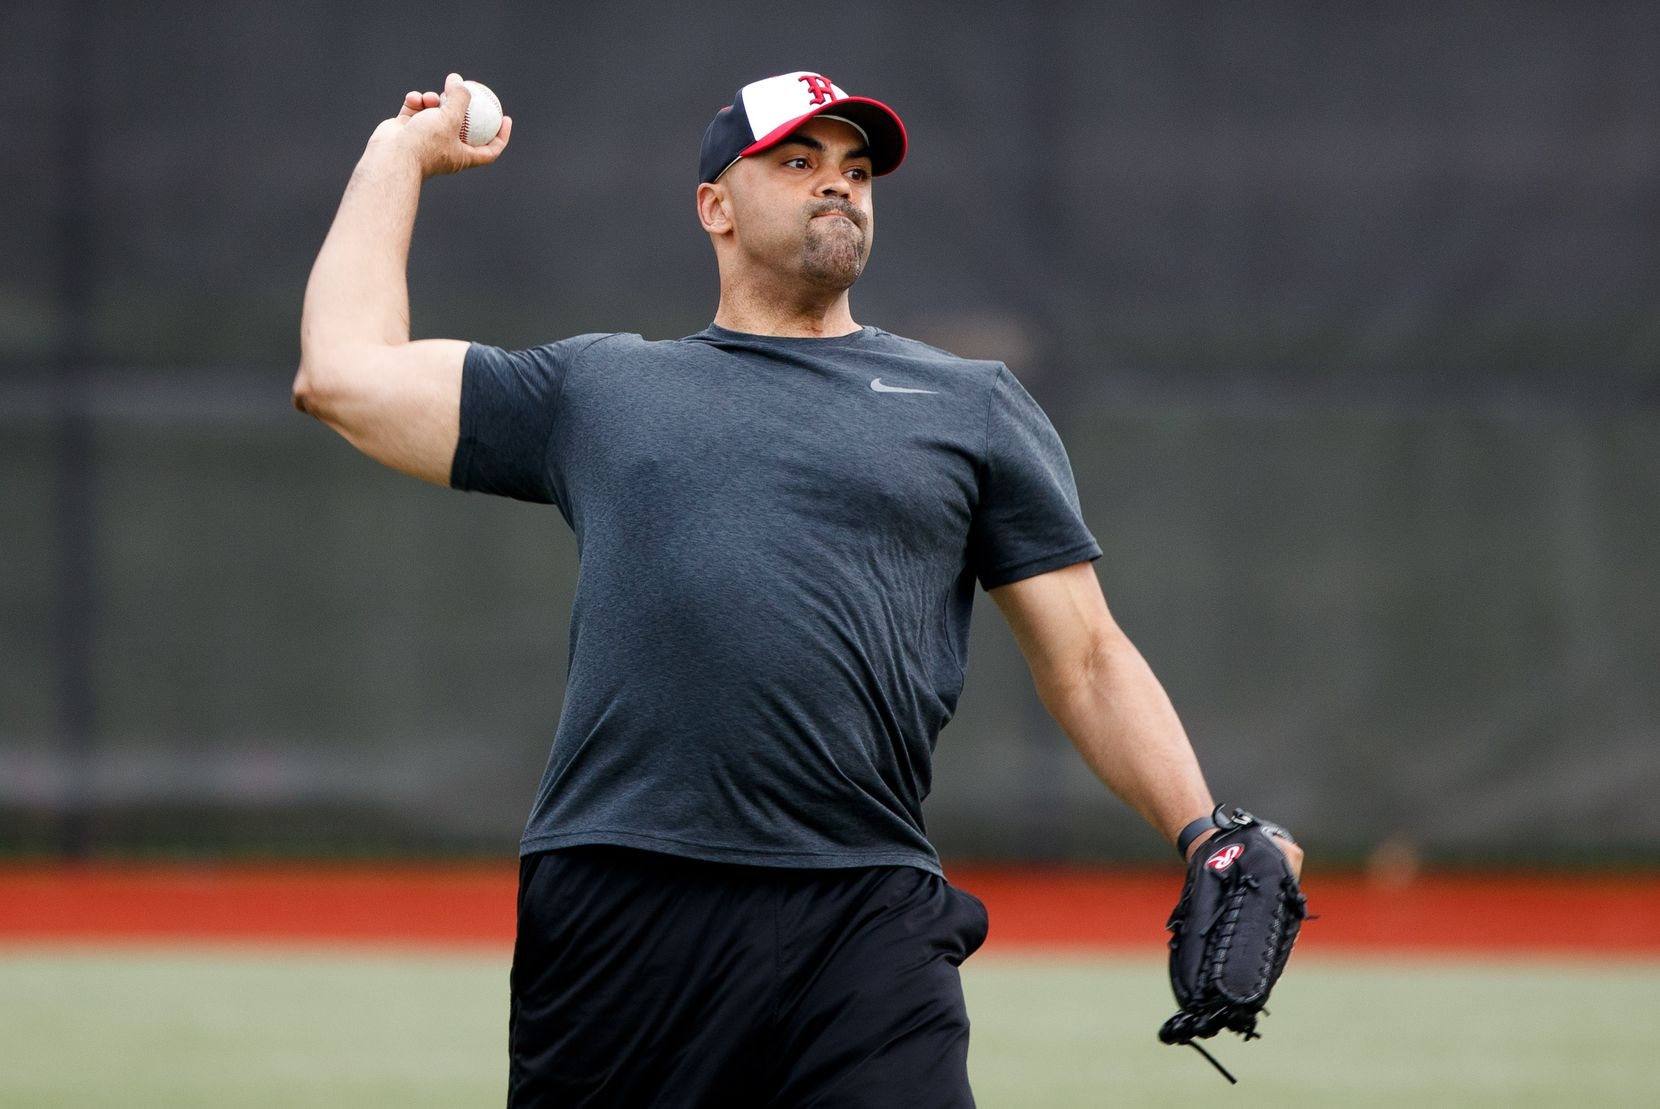 Rep. Colin Allred, D-Texas, a member of the Democratic Congressional Baseball team, throws the ball during practice on June 20, 2019 in Washington, District of Columbia.